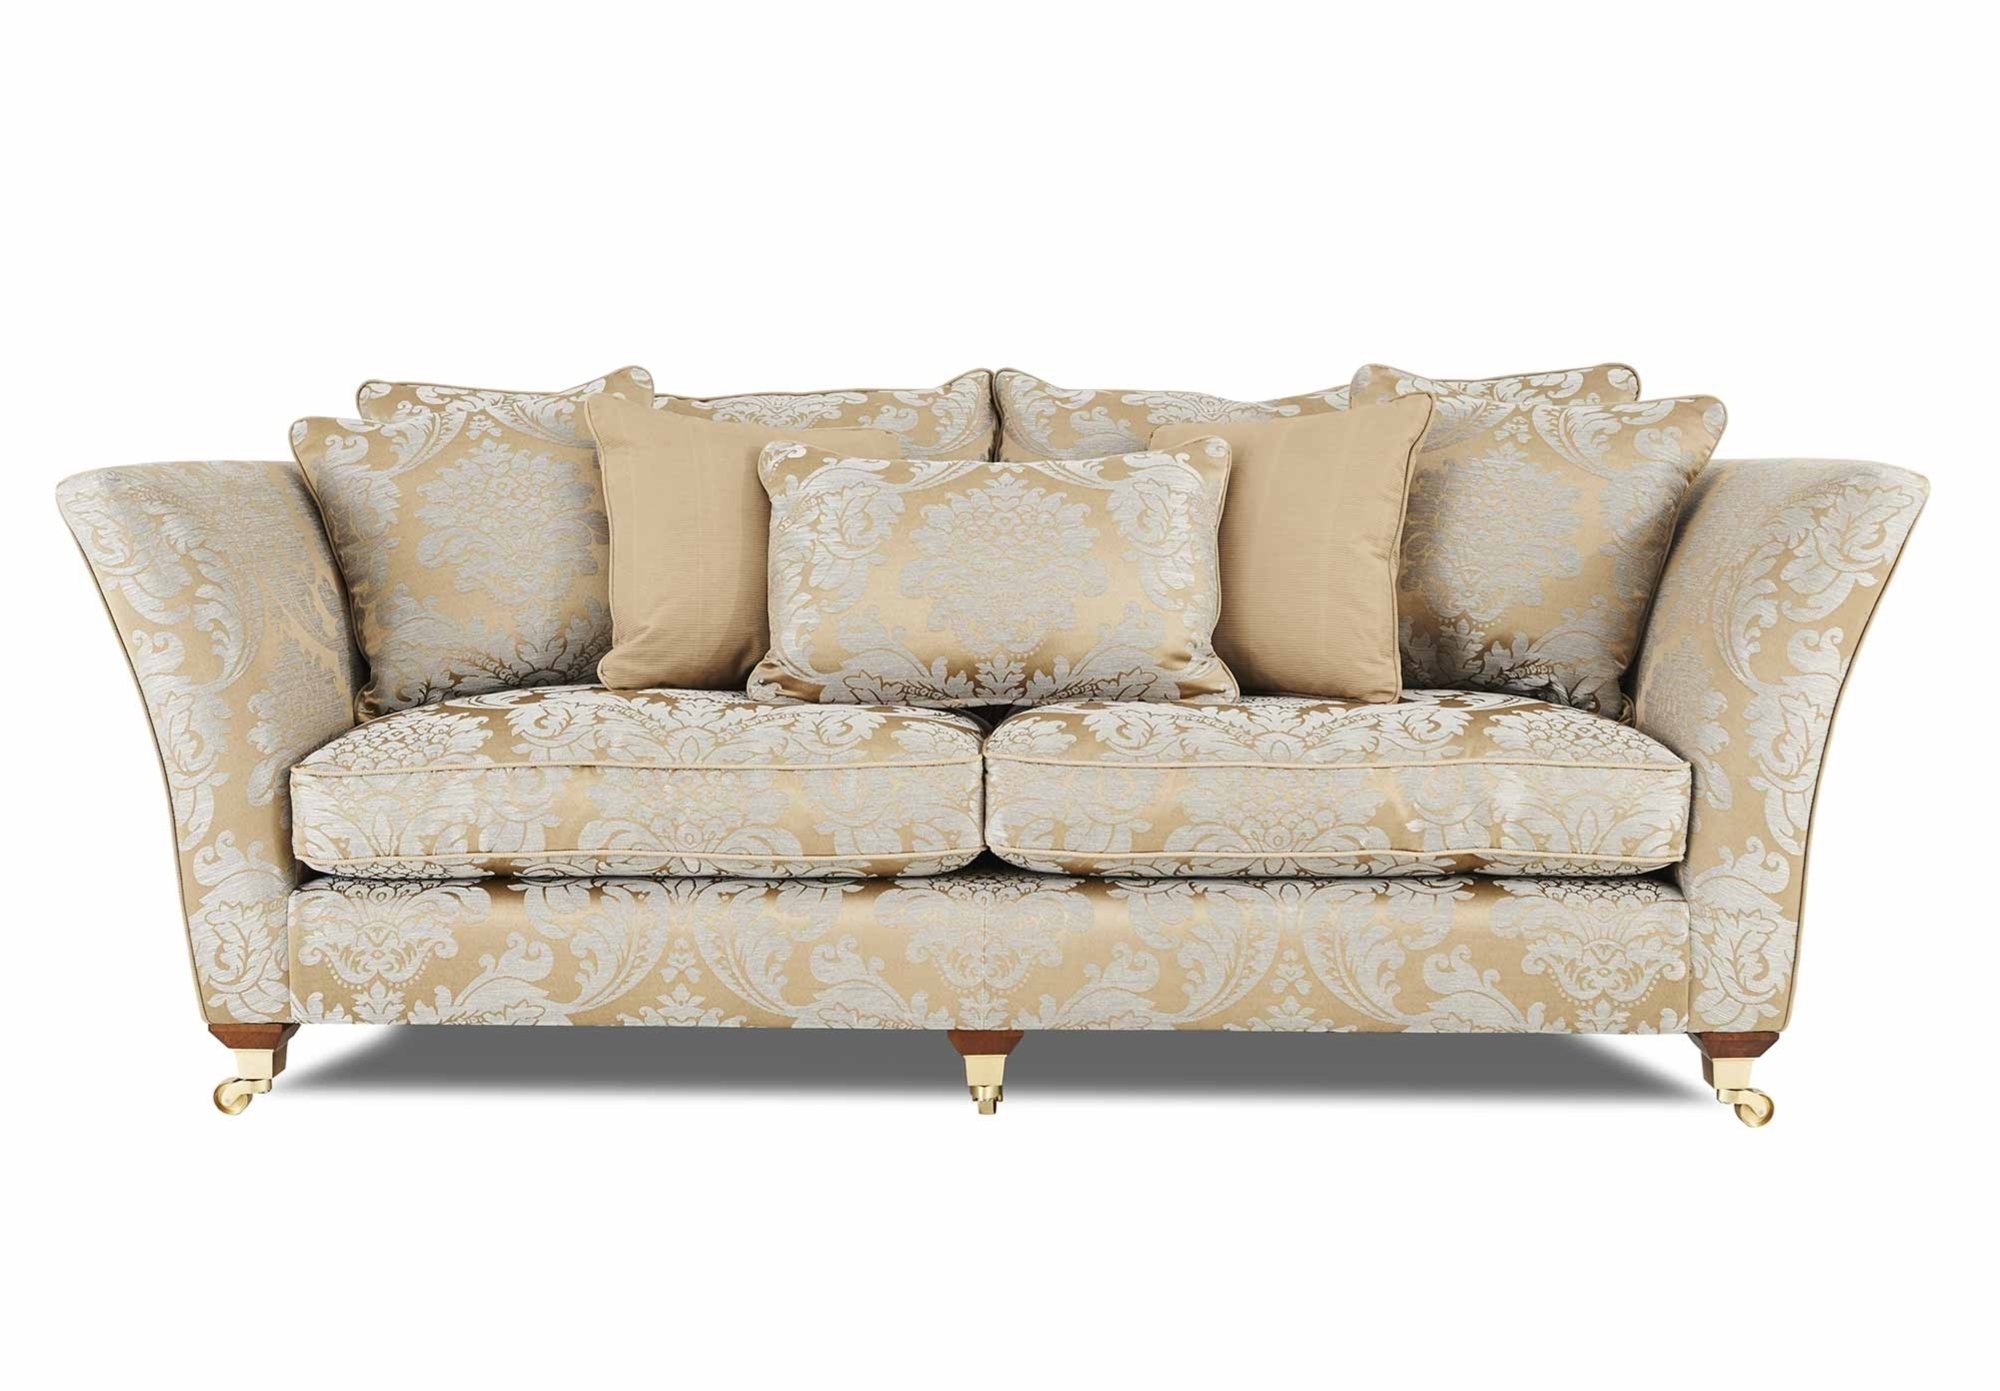 Famous Furniture : Contemporary Modern Tufted Sofa Delano 120 Tufted Intended For Kitchener Sectional Sofas (View 3 of 20)